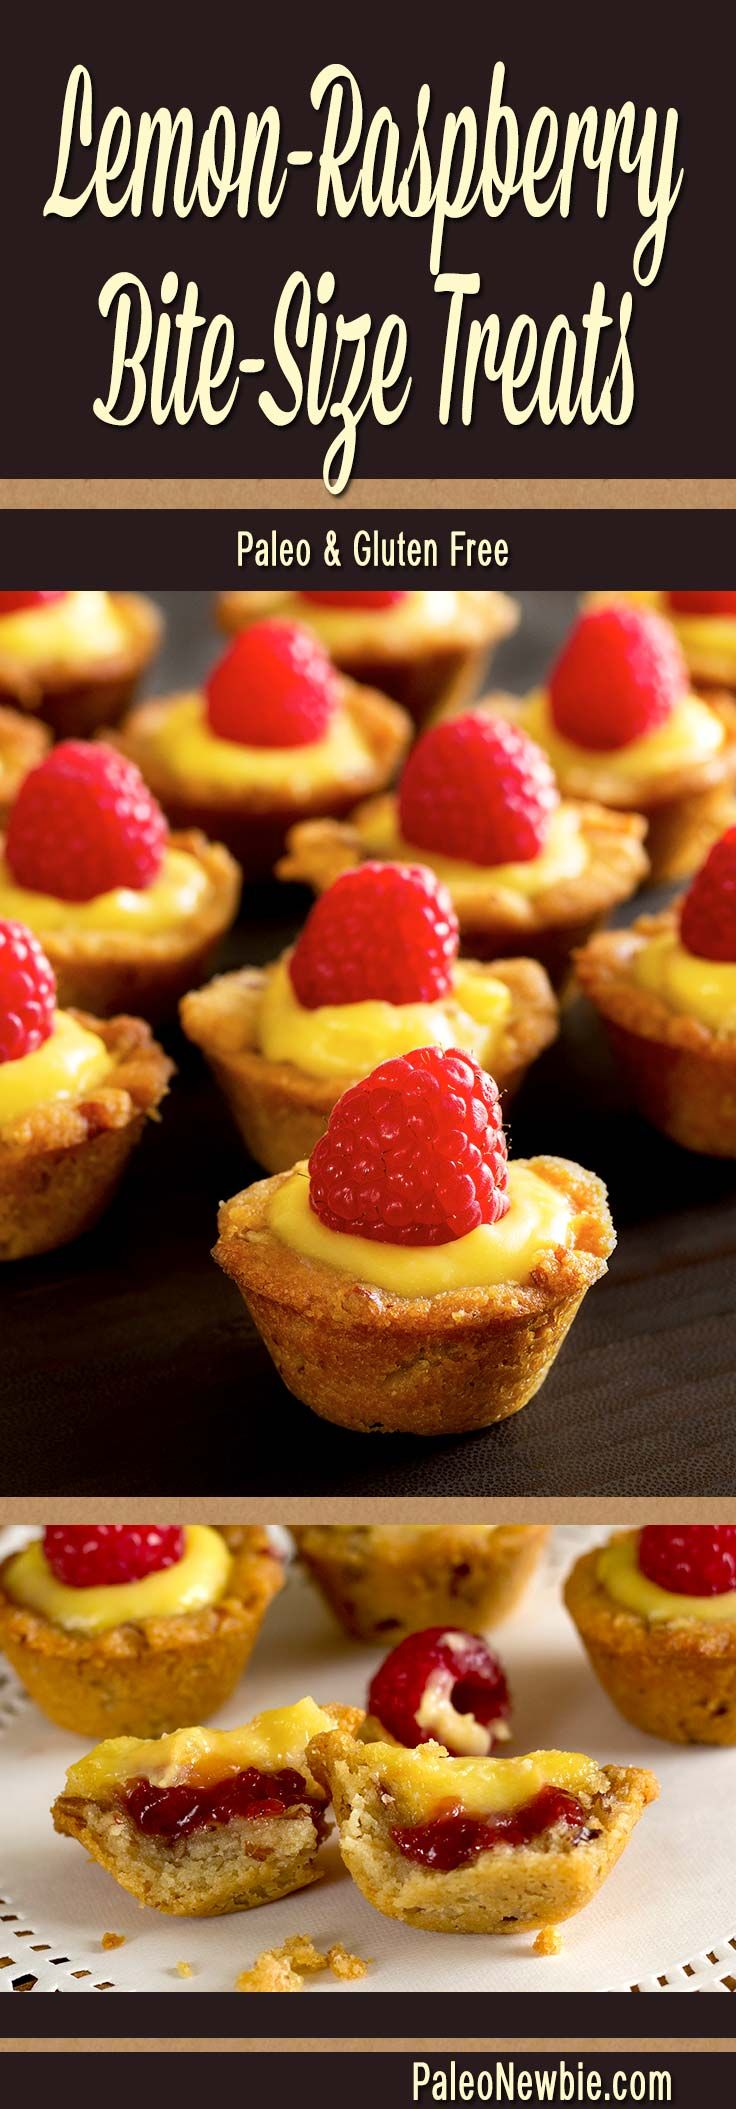 Lemon custard and raspberry jam in a pecan-based cup. Elegant mini-lemon confections with big, bold flavors! Perfect for a party tray or luncheon dessert.